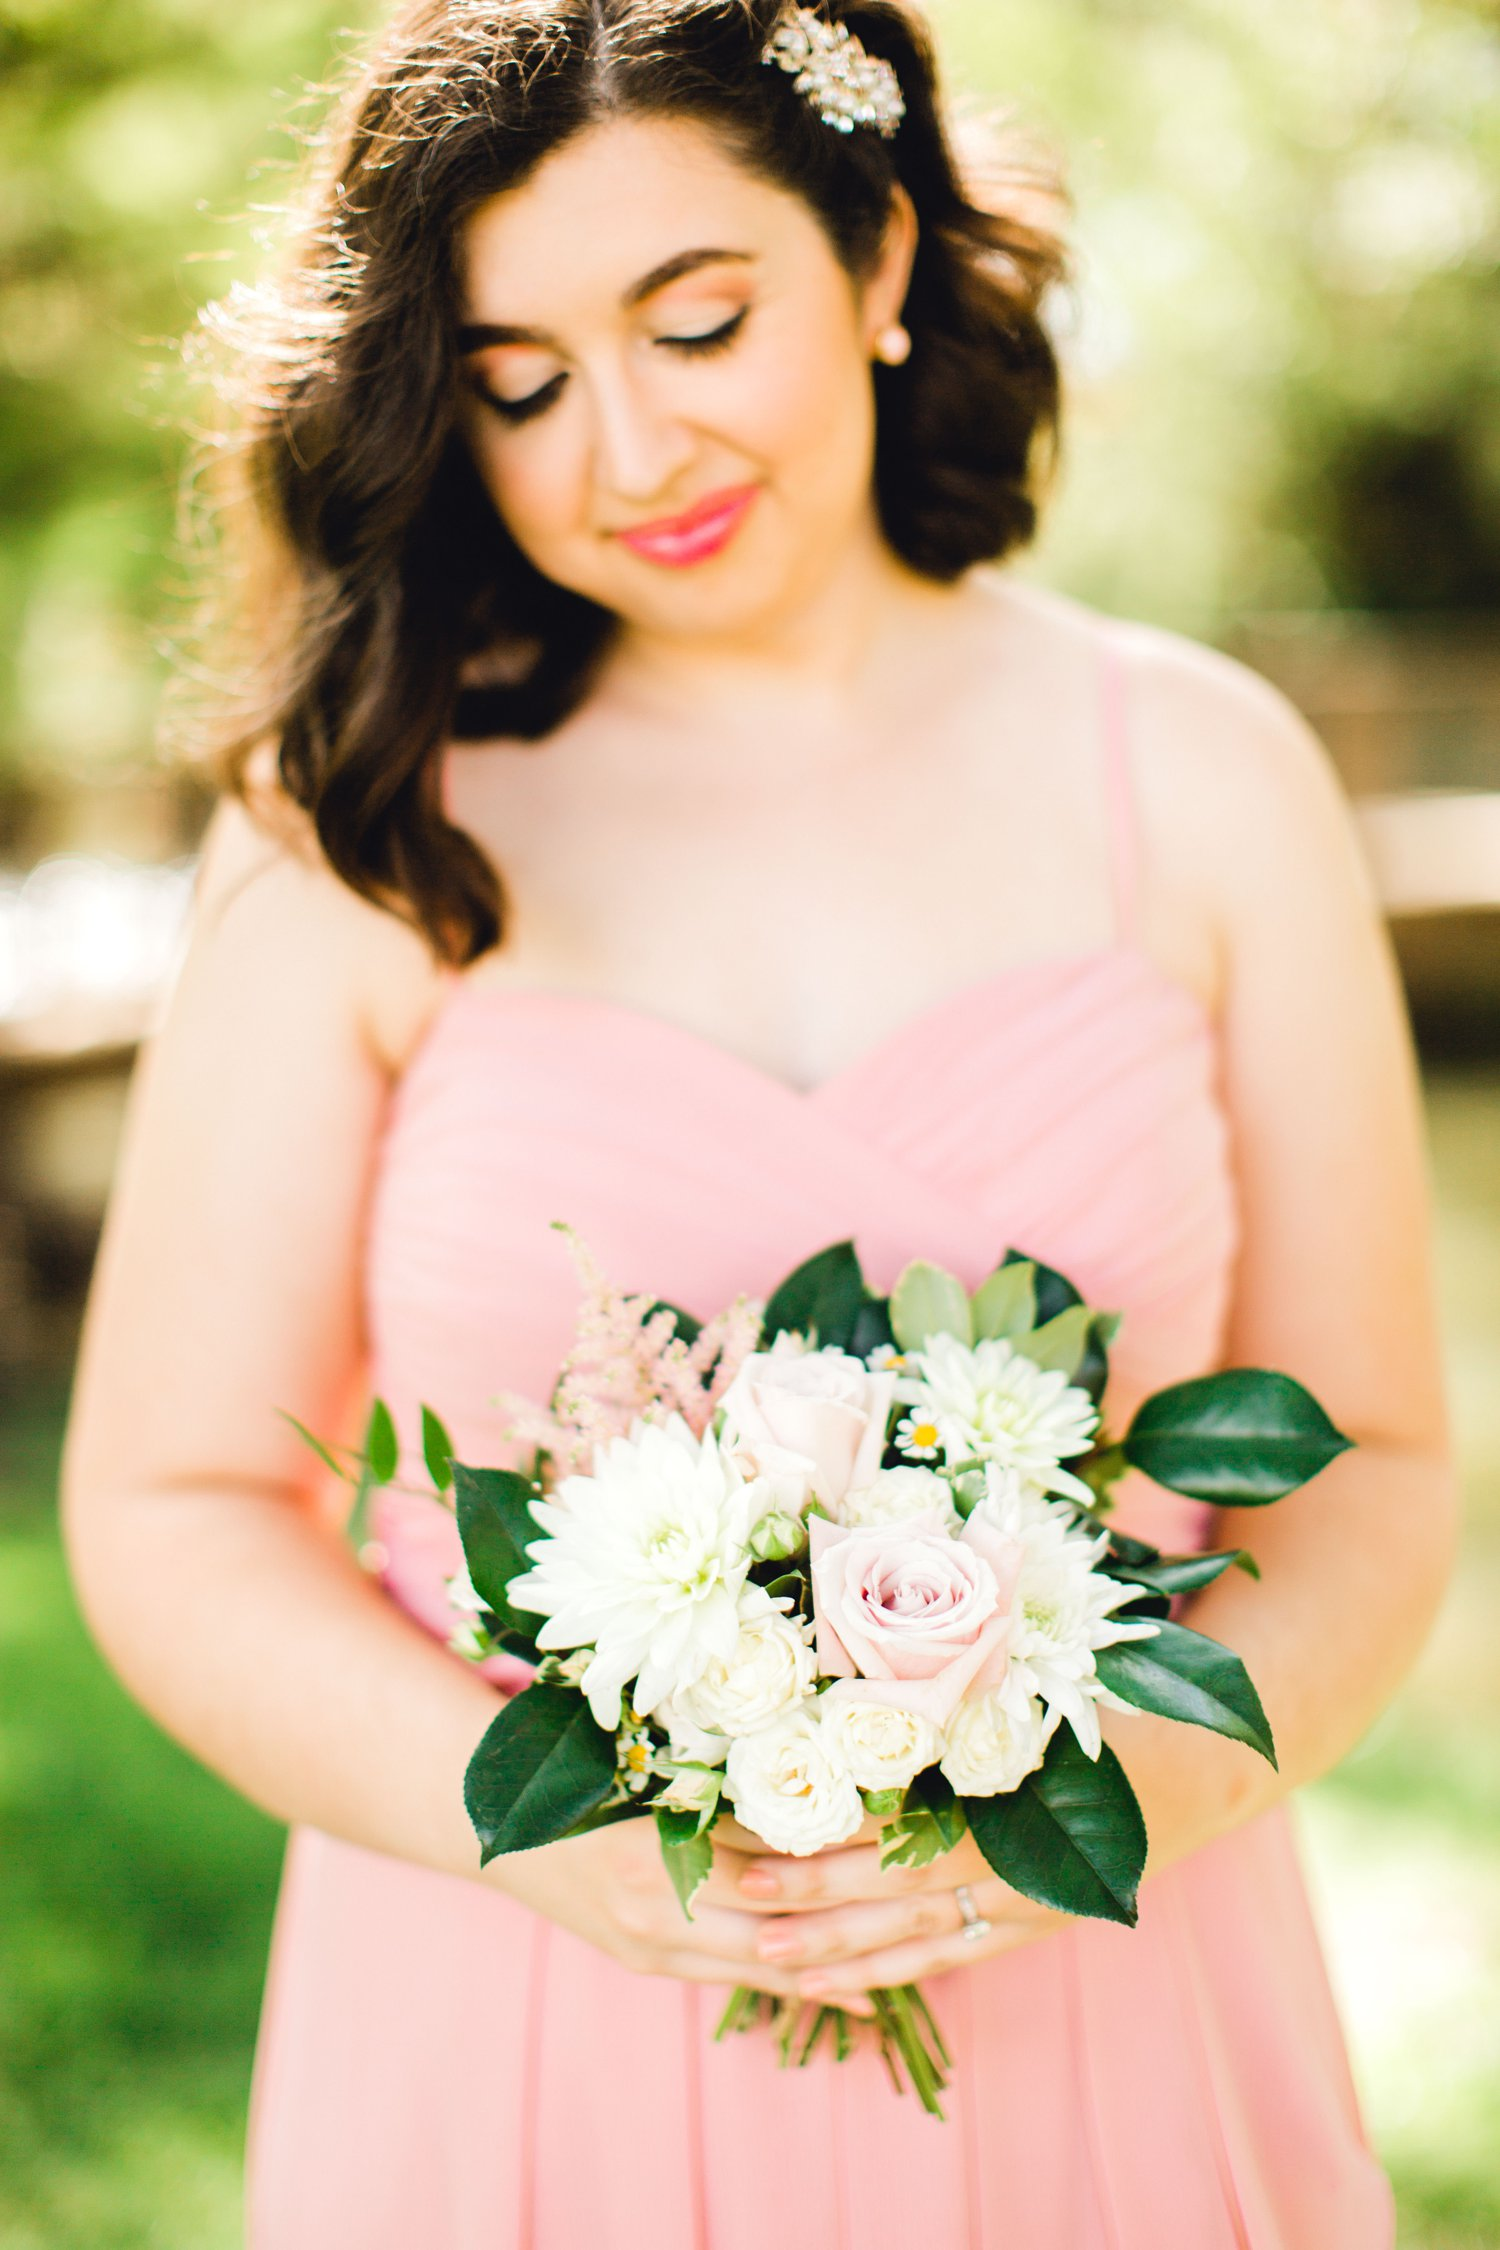 SARAH_AND_GEOFFREY_SHARP_SPIRIT_RANCH_WEDDING_ALLEEJ_LUBBOCK_TX_0016.jpg